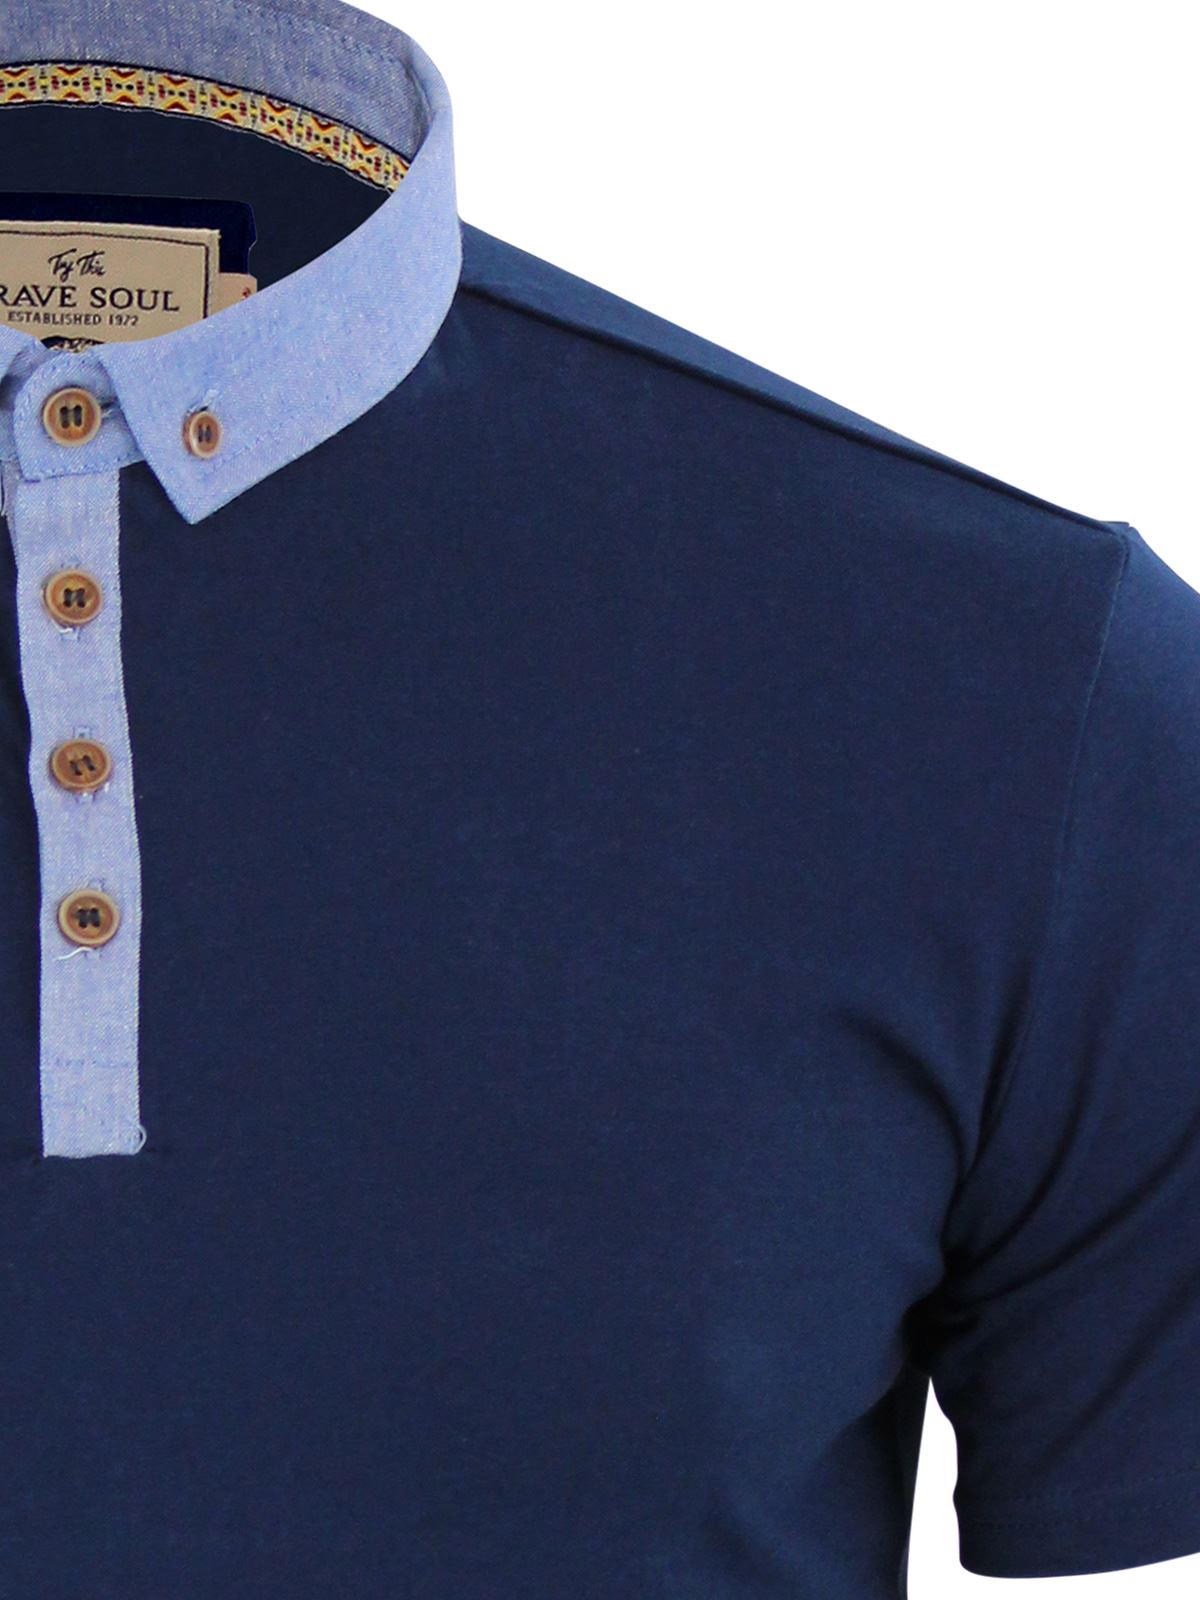 Brave-Soul-Glover-Mens-Polo-T-Shirt-Cotton-Collared-Short-Sleeve-Casual-Top thumbnail 22